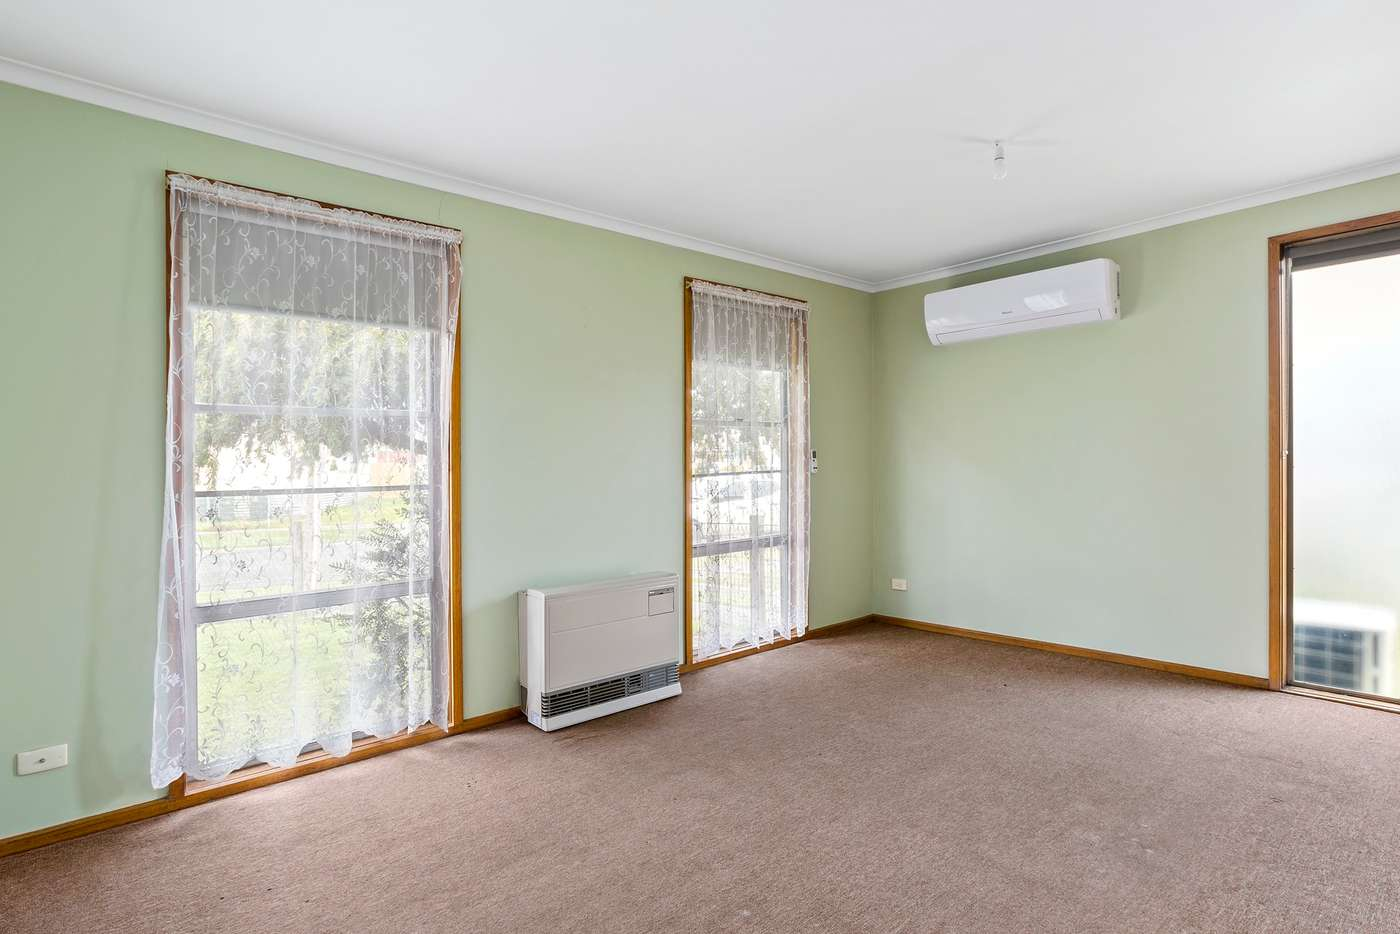 Sixth view of Homely house listing, 27 Donaldson Street, Colac VIC 3250